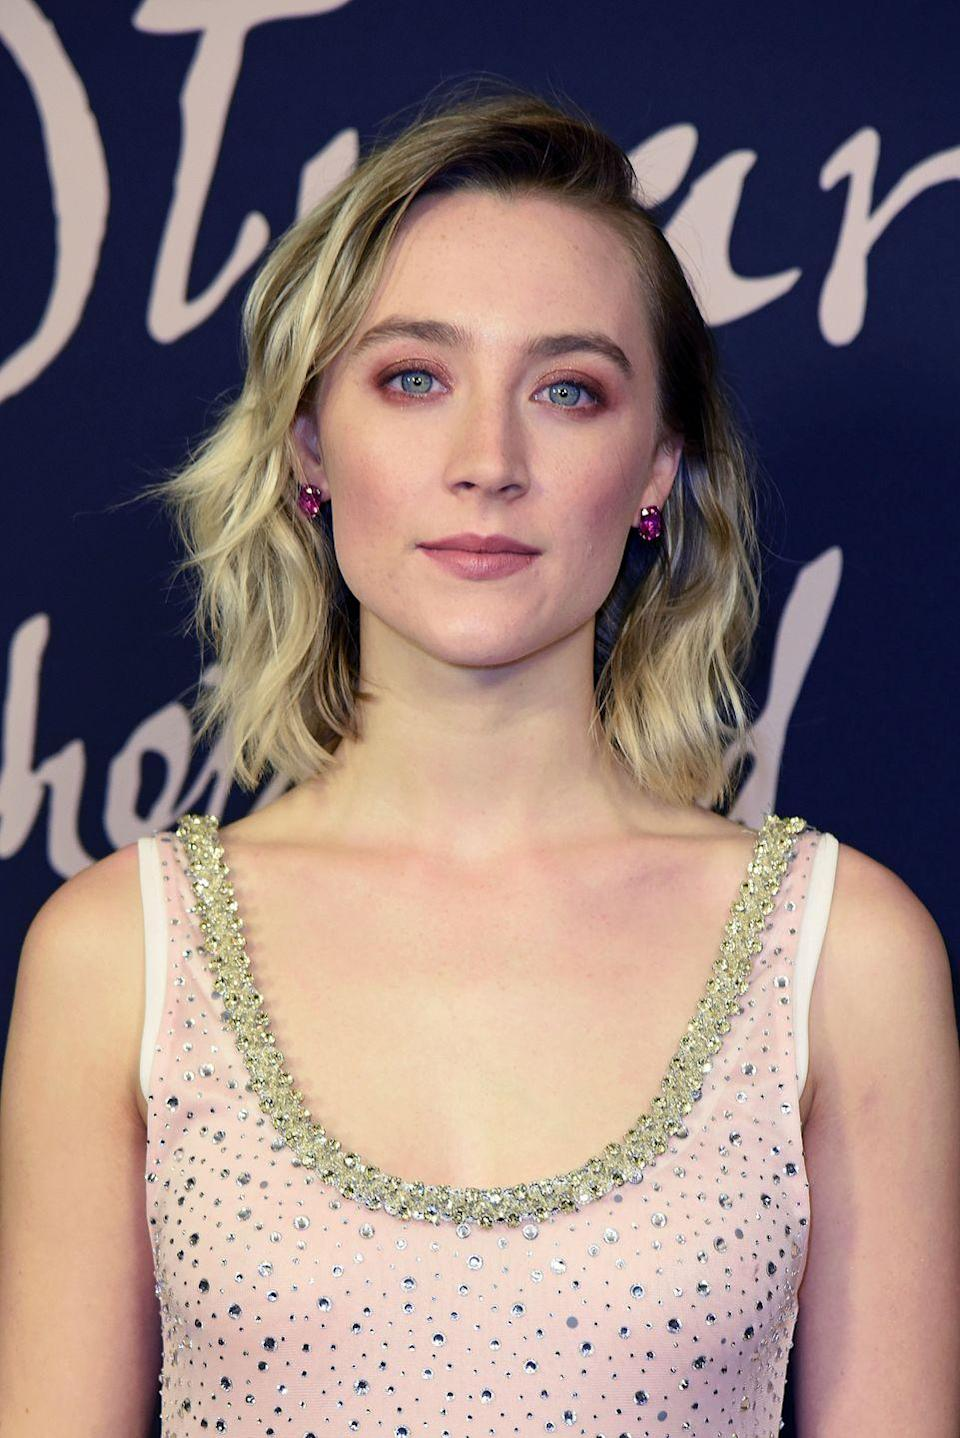 <p>Given that her big break in <em>Atonement </em>happened when she was just 13 and her affinity for taking on roles in period pieces, it's no surprise most people assume Saoirse is well beyond her quarter century birthday. </p>